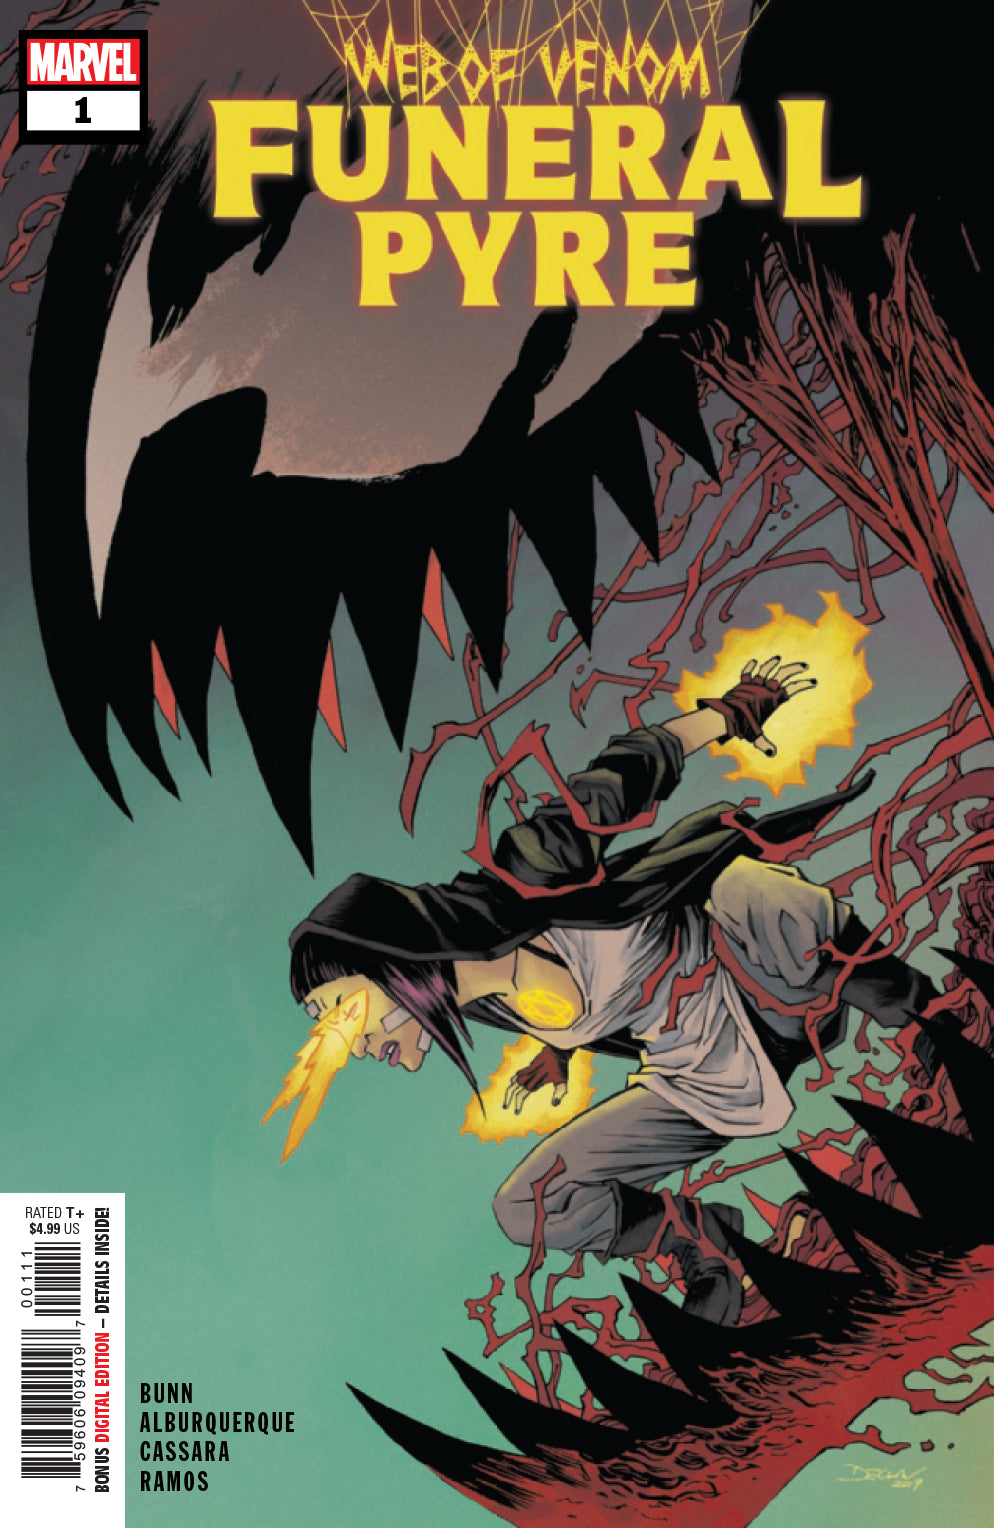 Web Of Venom Funeral Pyre #1